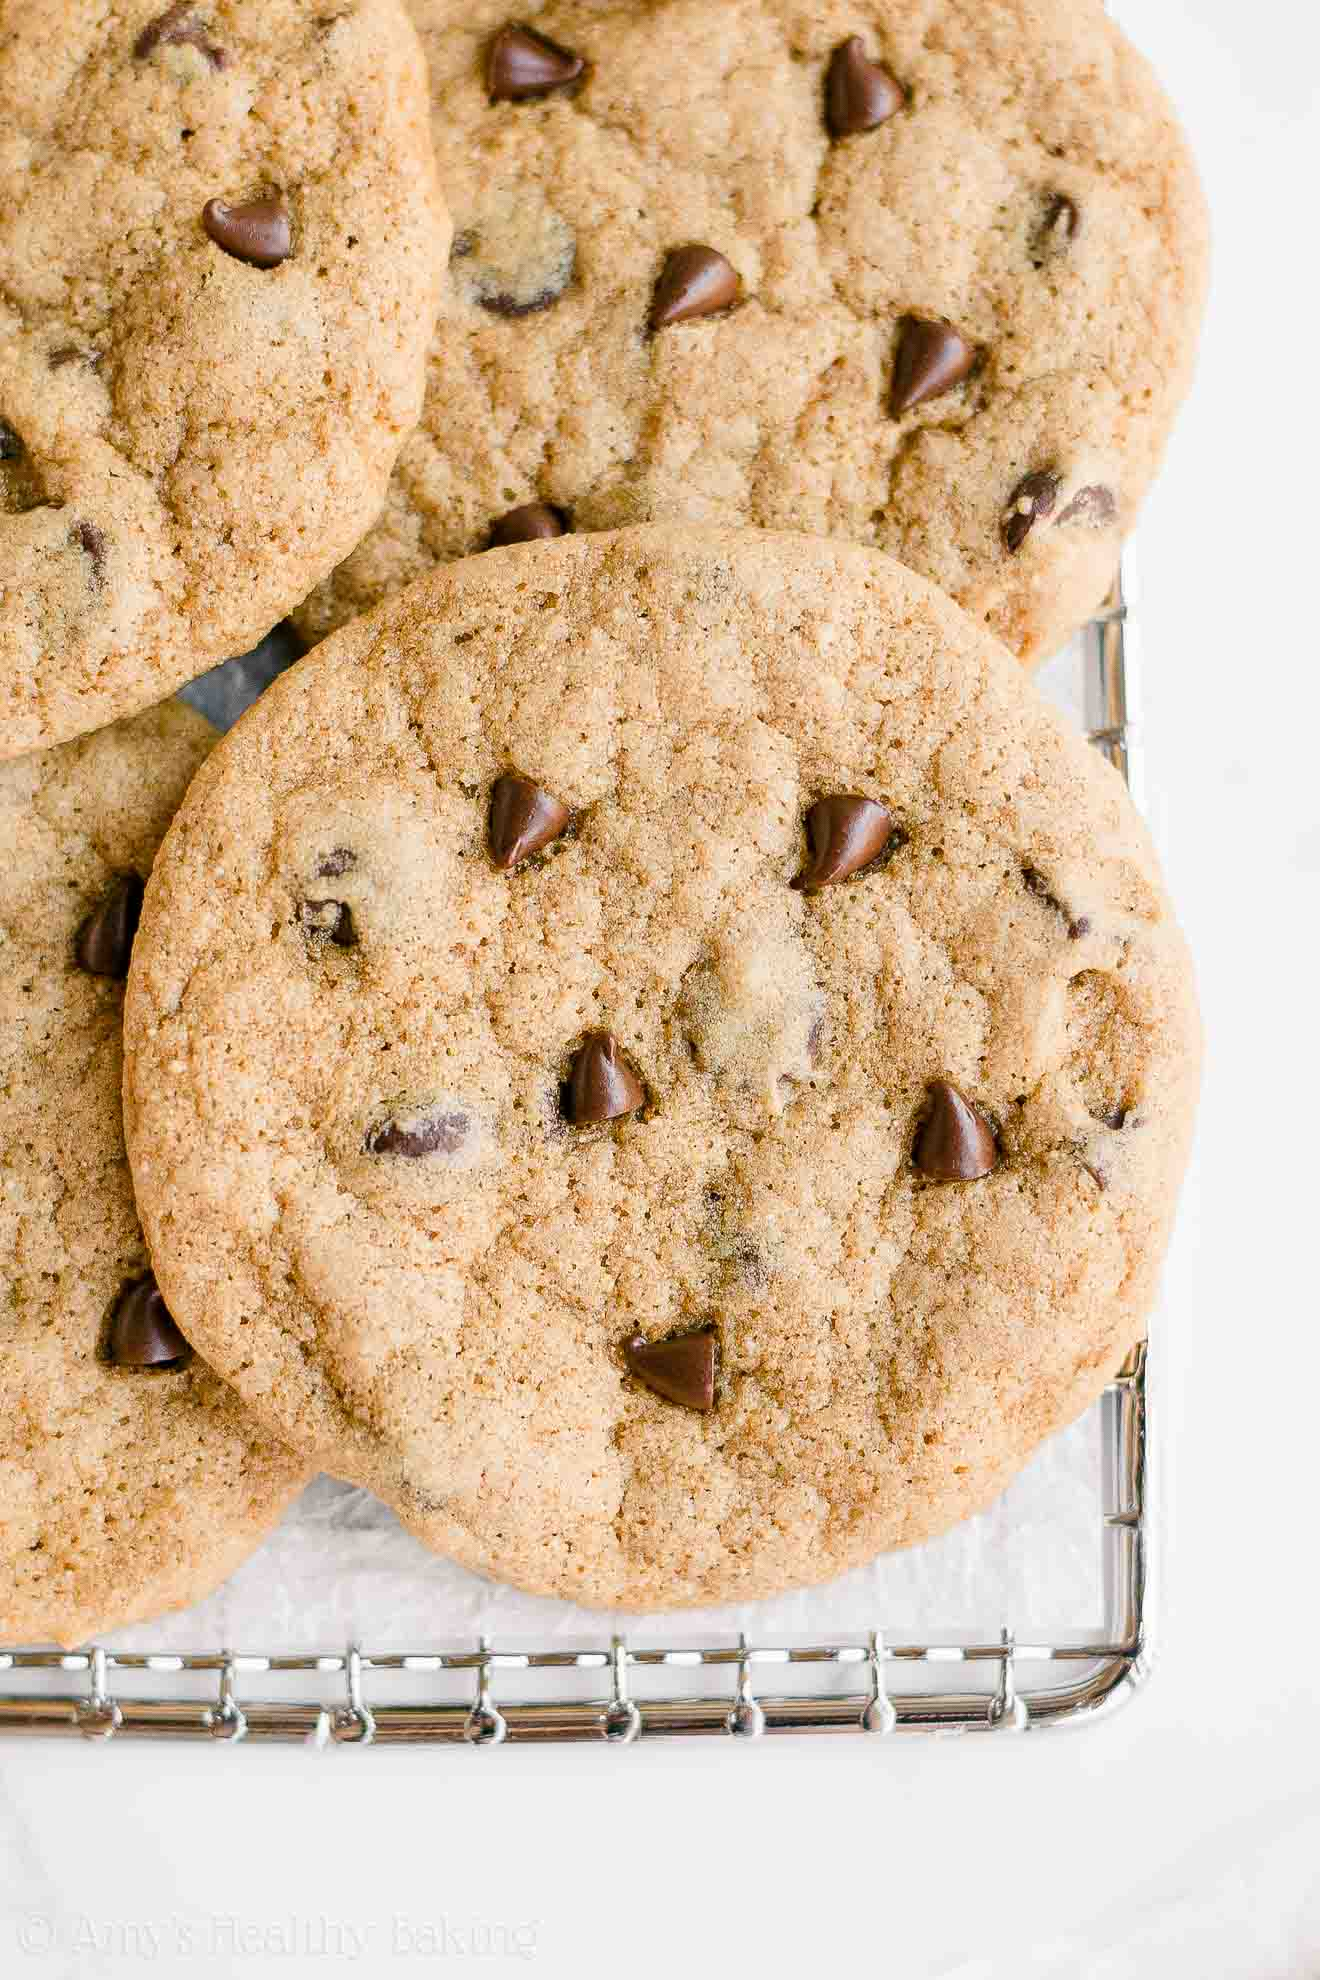 Healthy Whole Wheat One-Bowl Small Batch Chewy Chocolate Chip Cookies